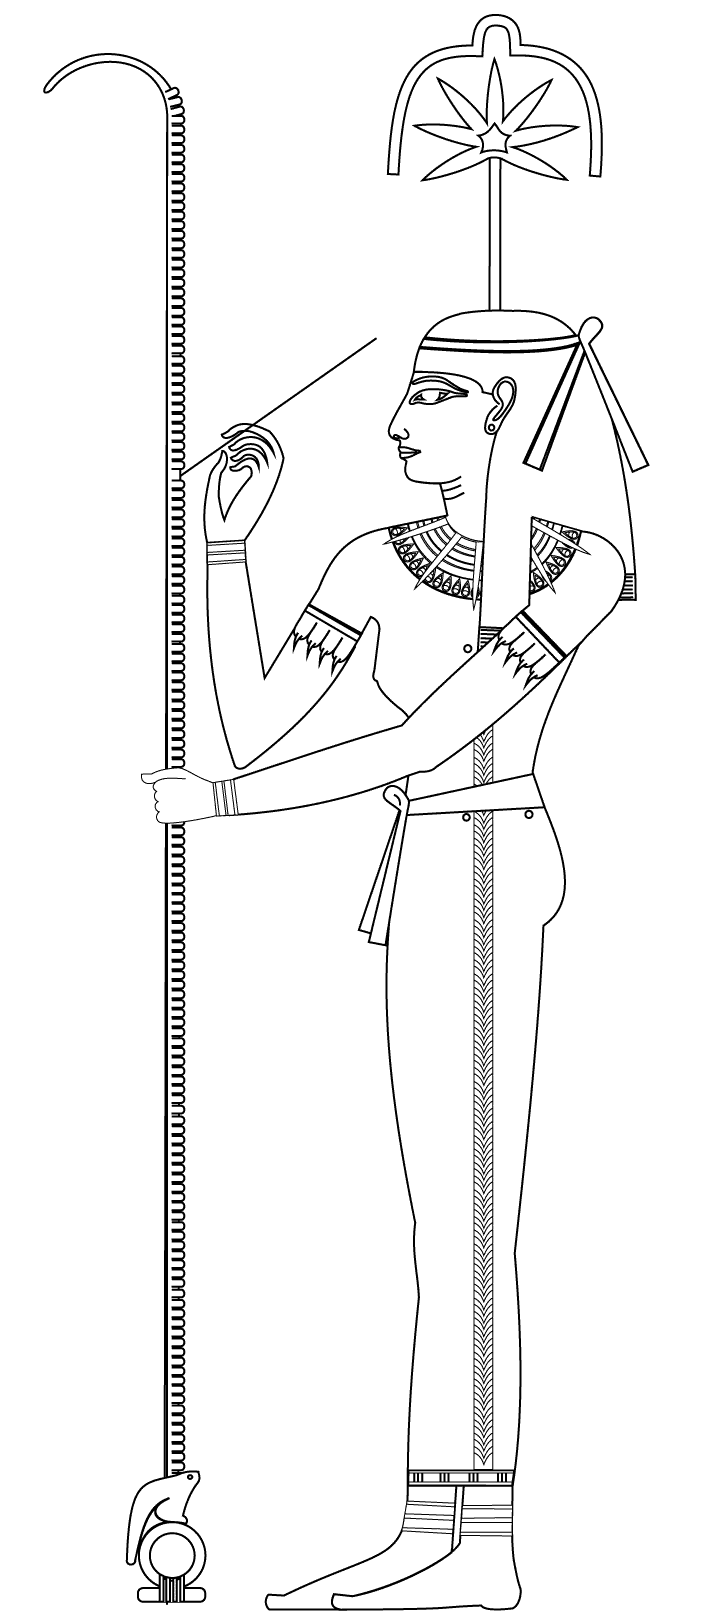 Egypt coloring page with few details for kids